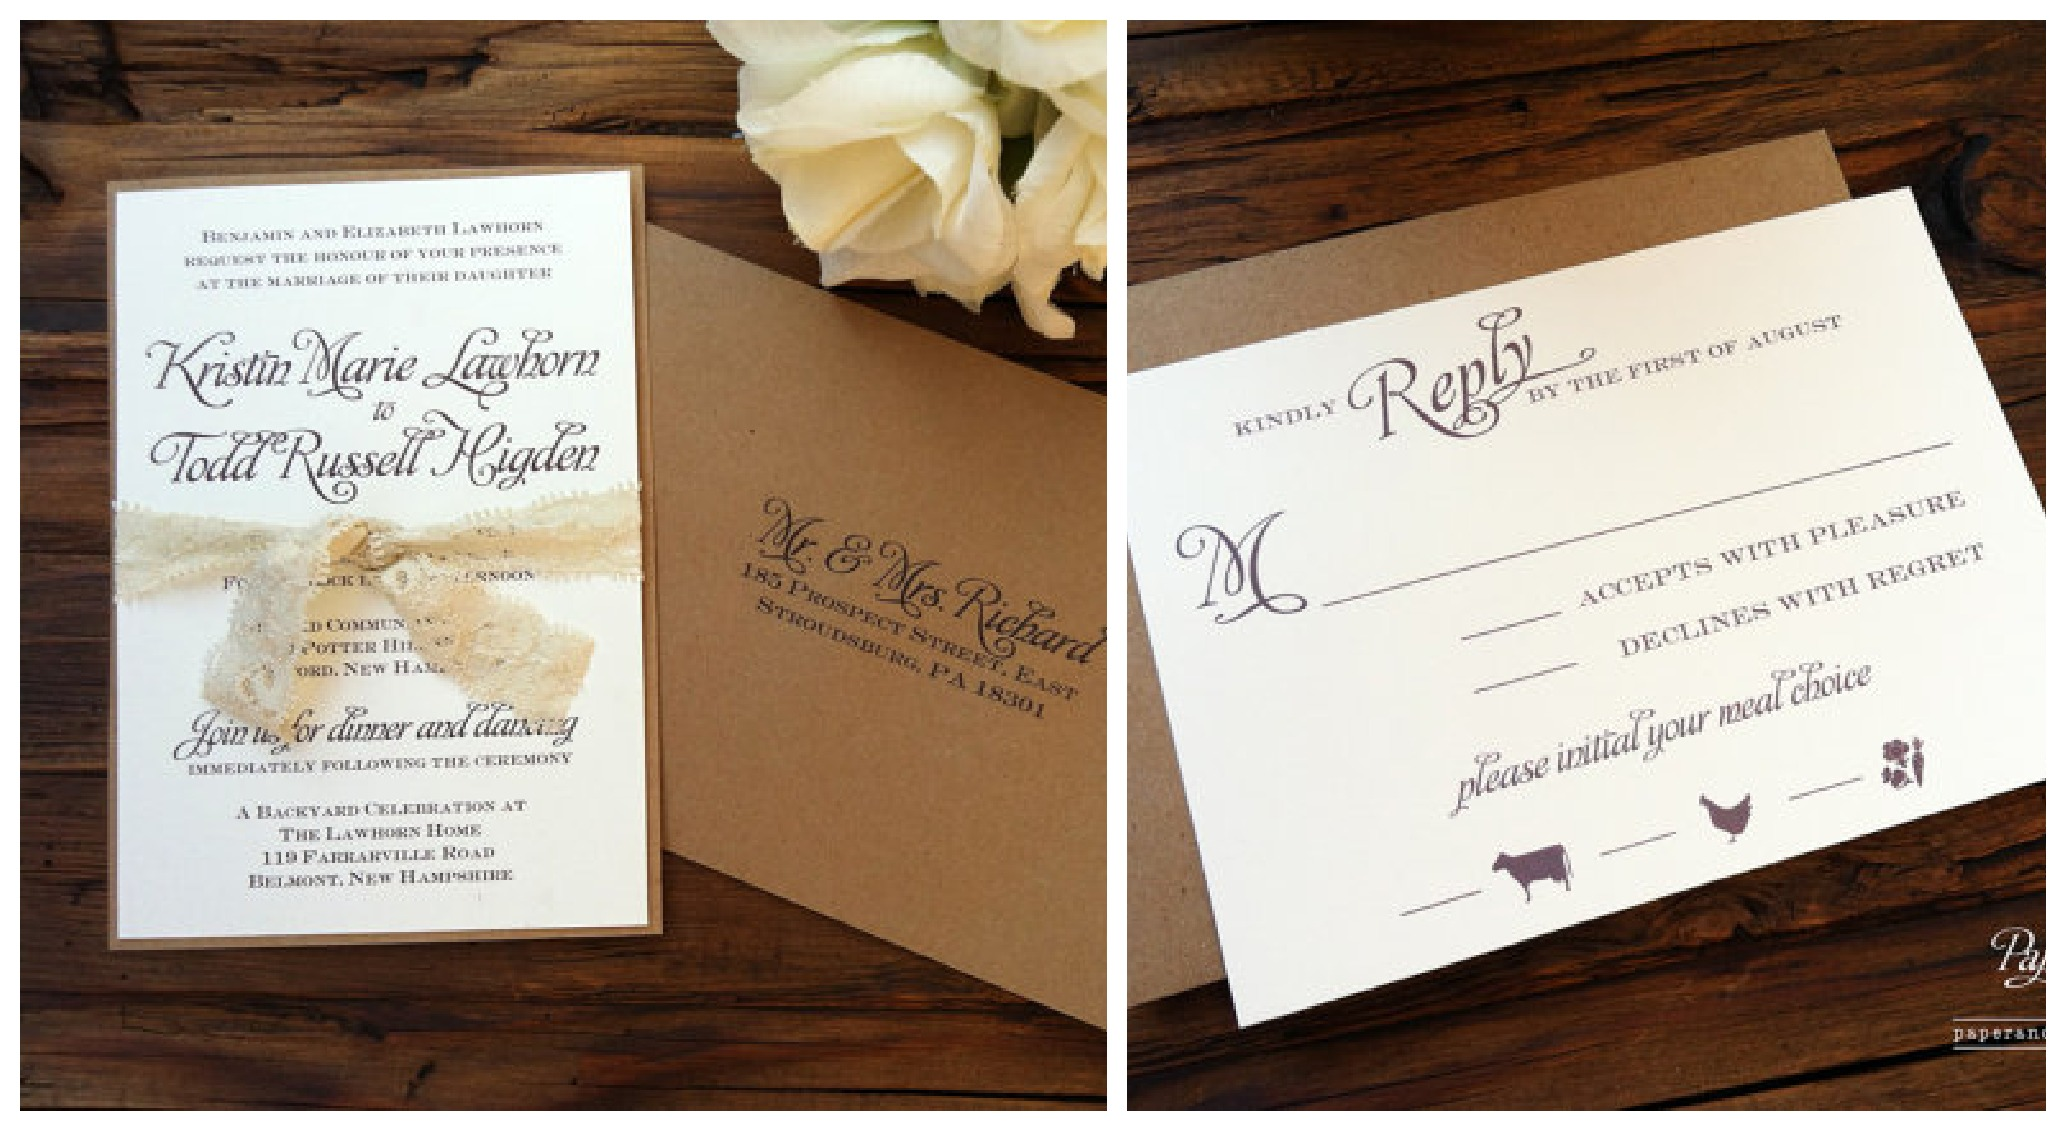 Kraft Paper Invitations & Wedding Stationary